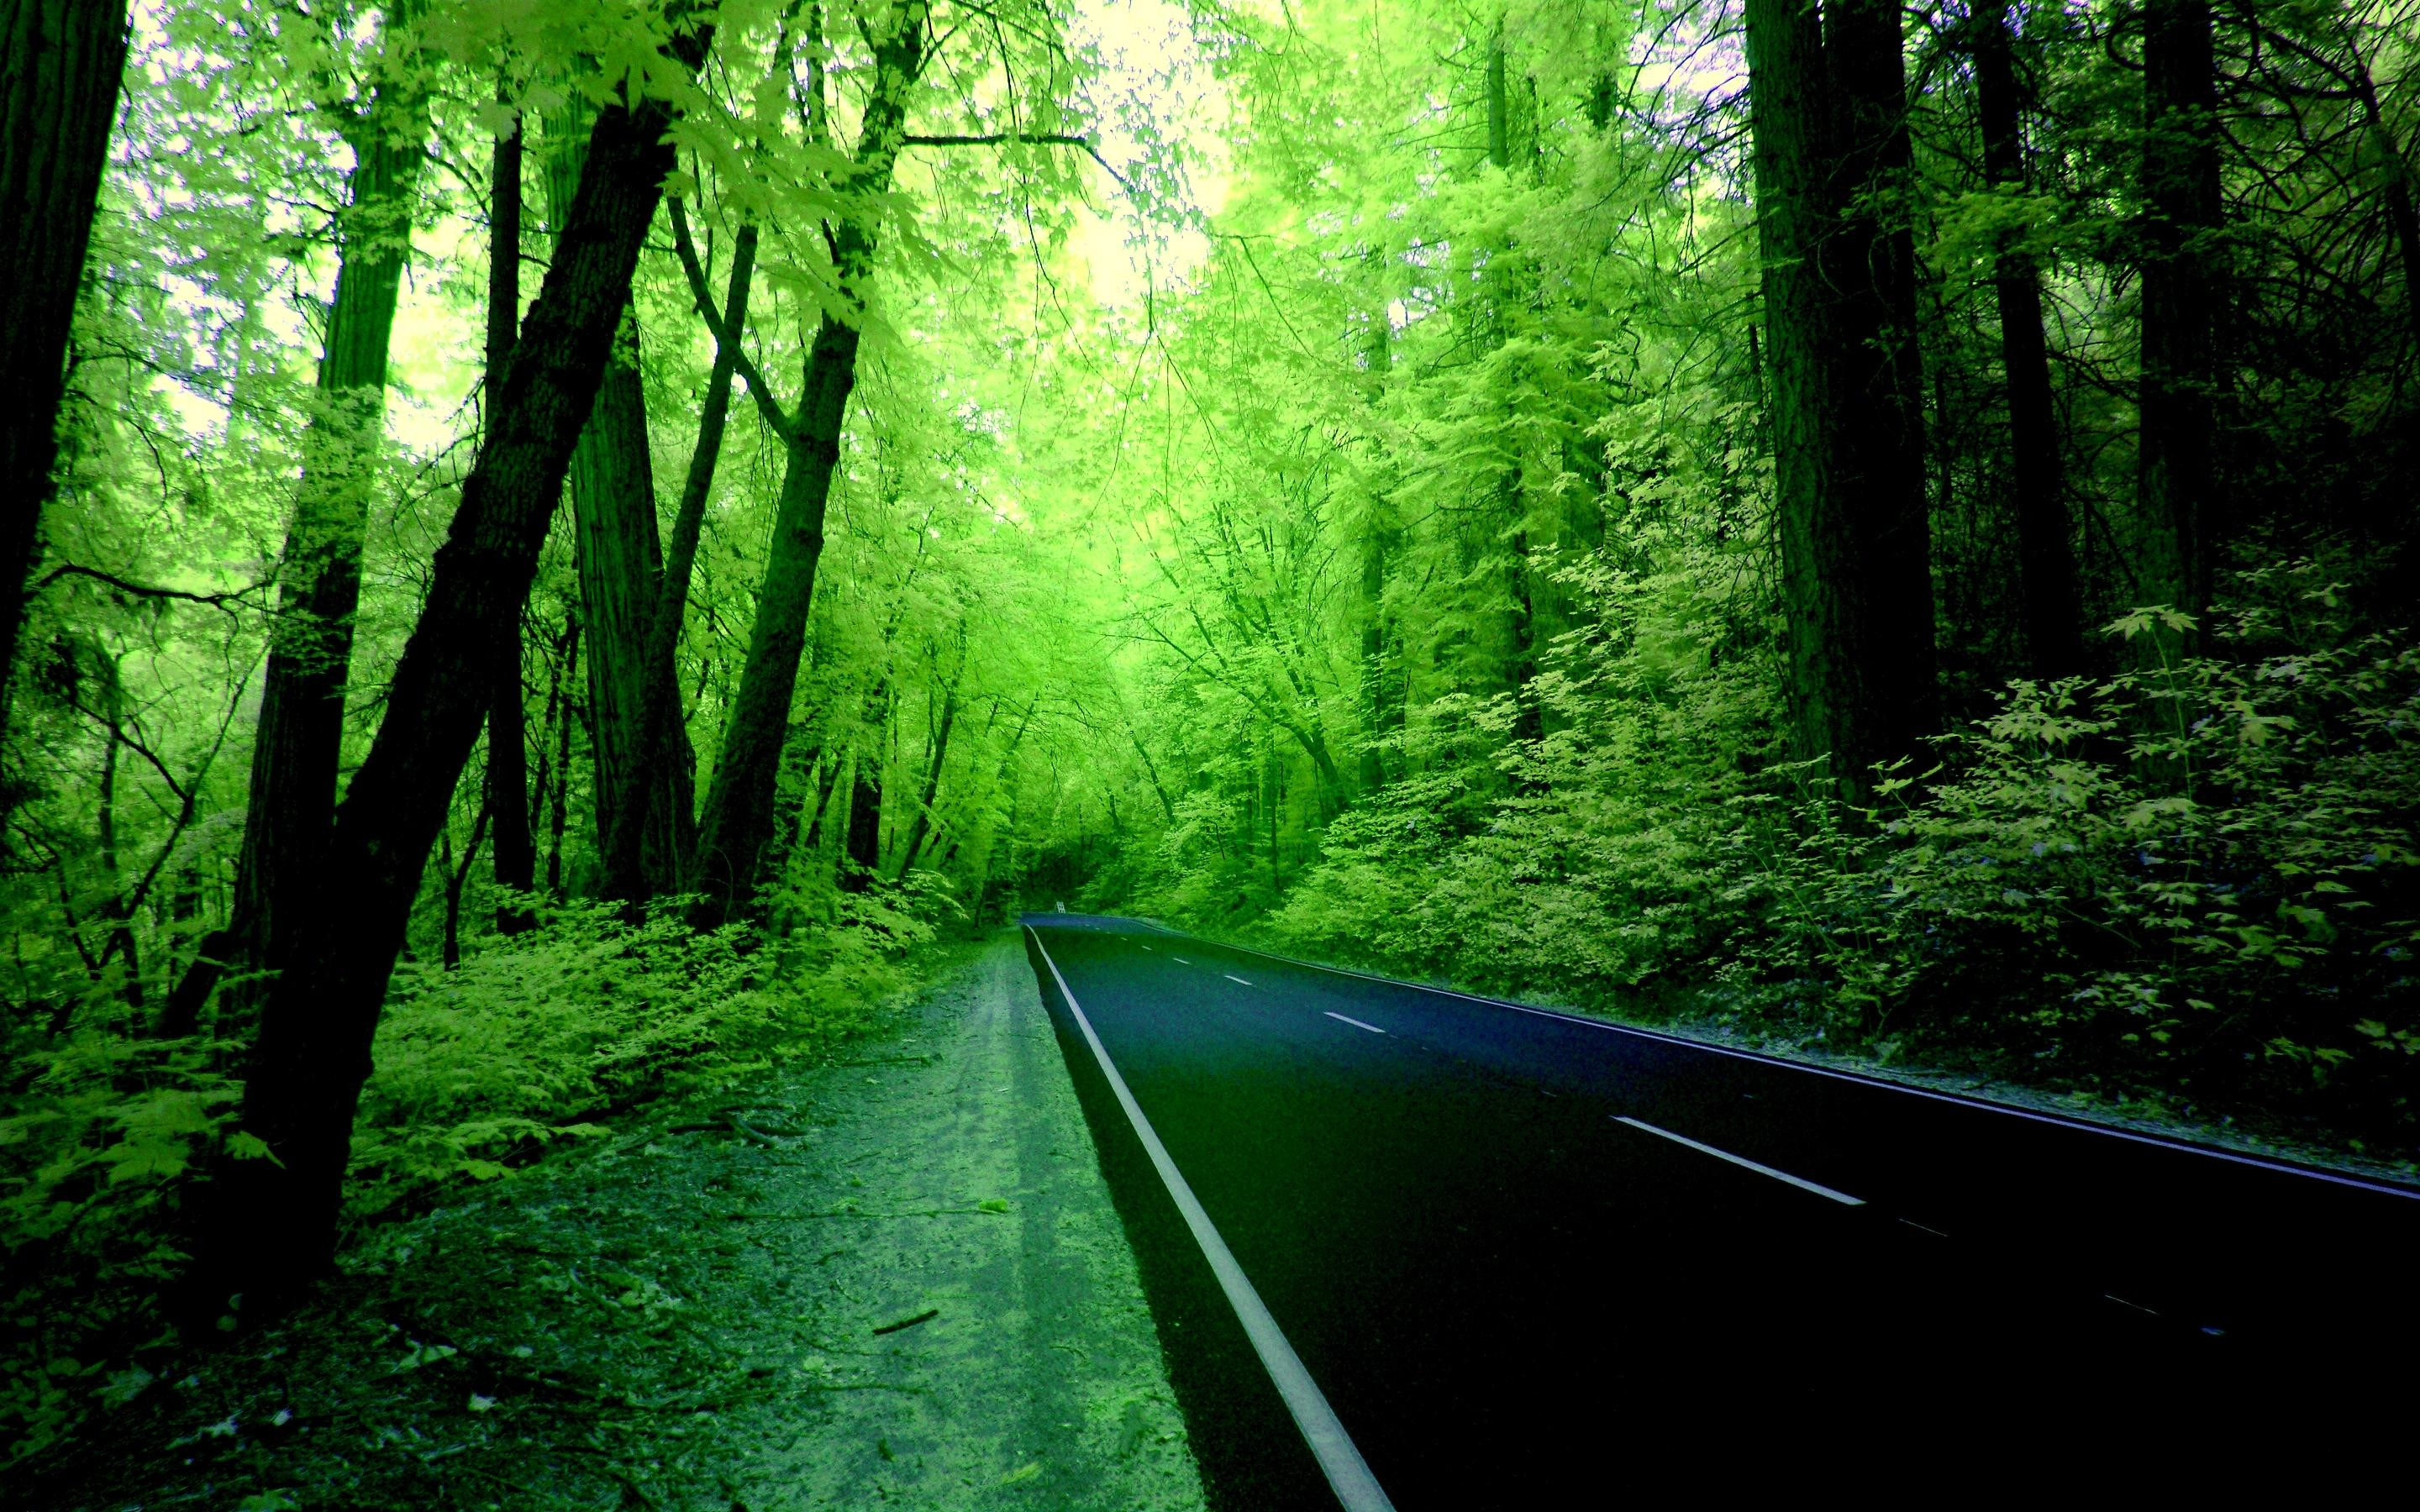 Green Forest Wallpaper Hd Background 9 HD Wallpapers